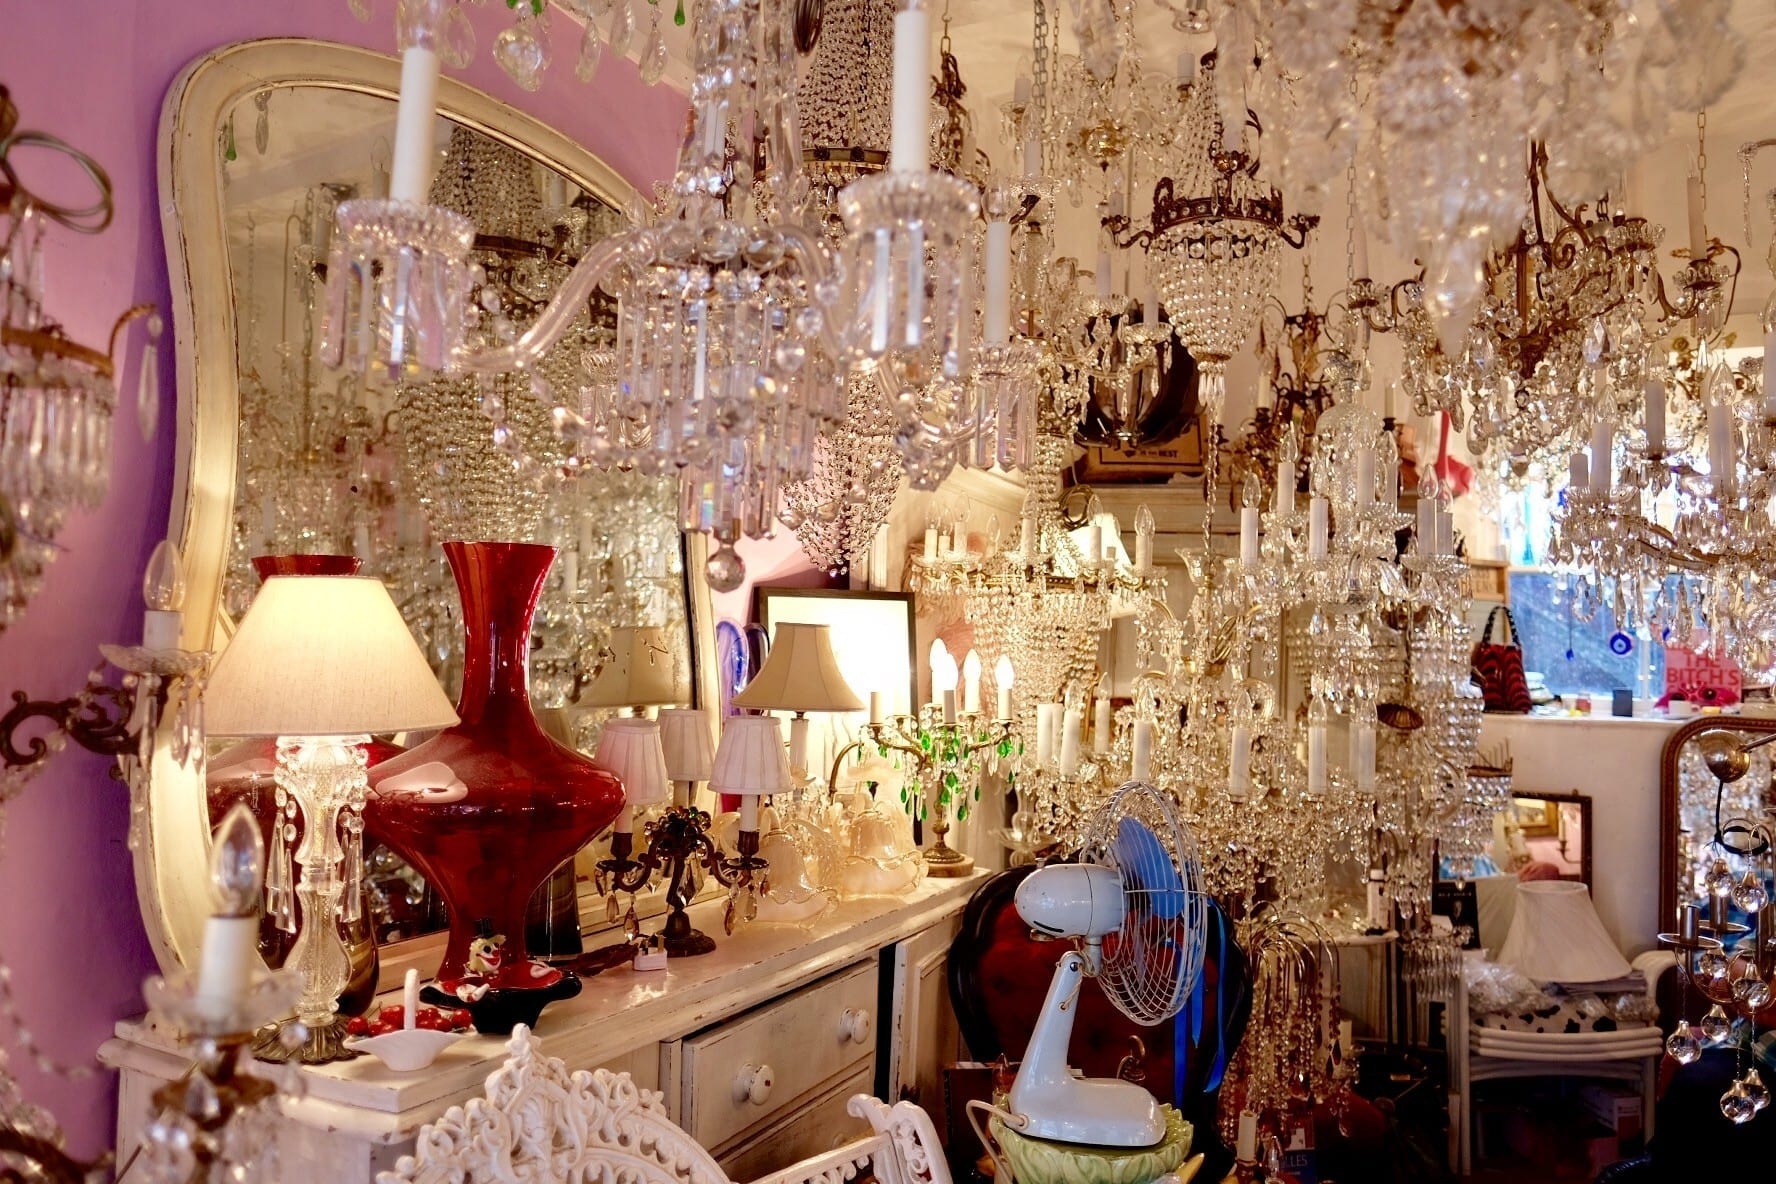 Chandelier Store, Haye-on-Wye